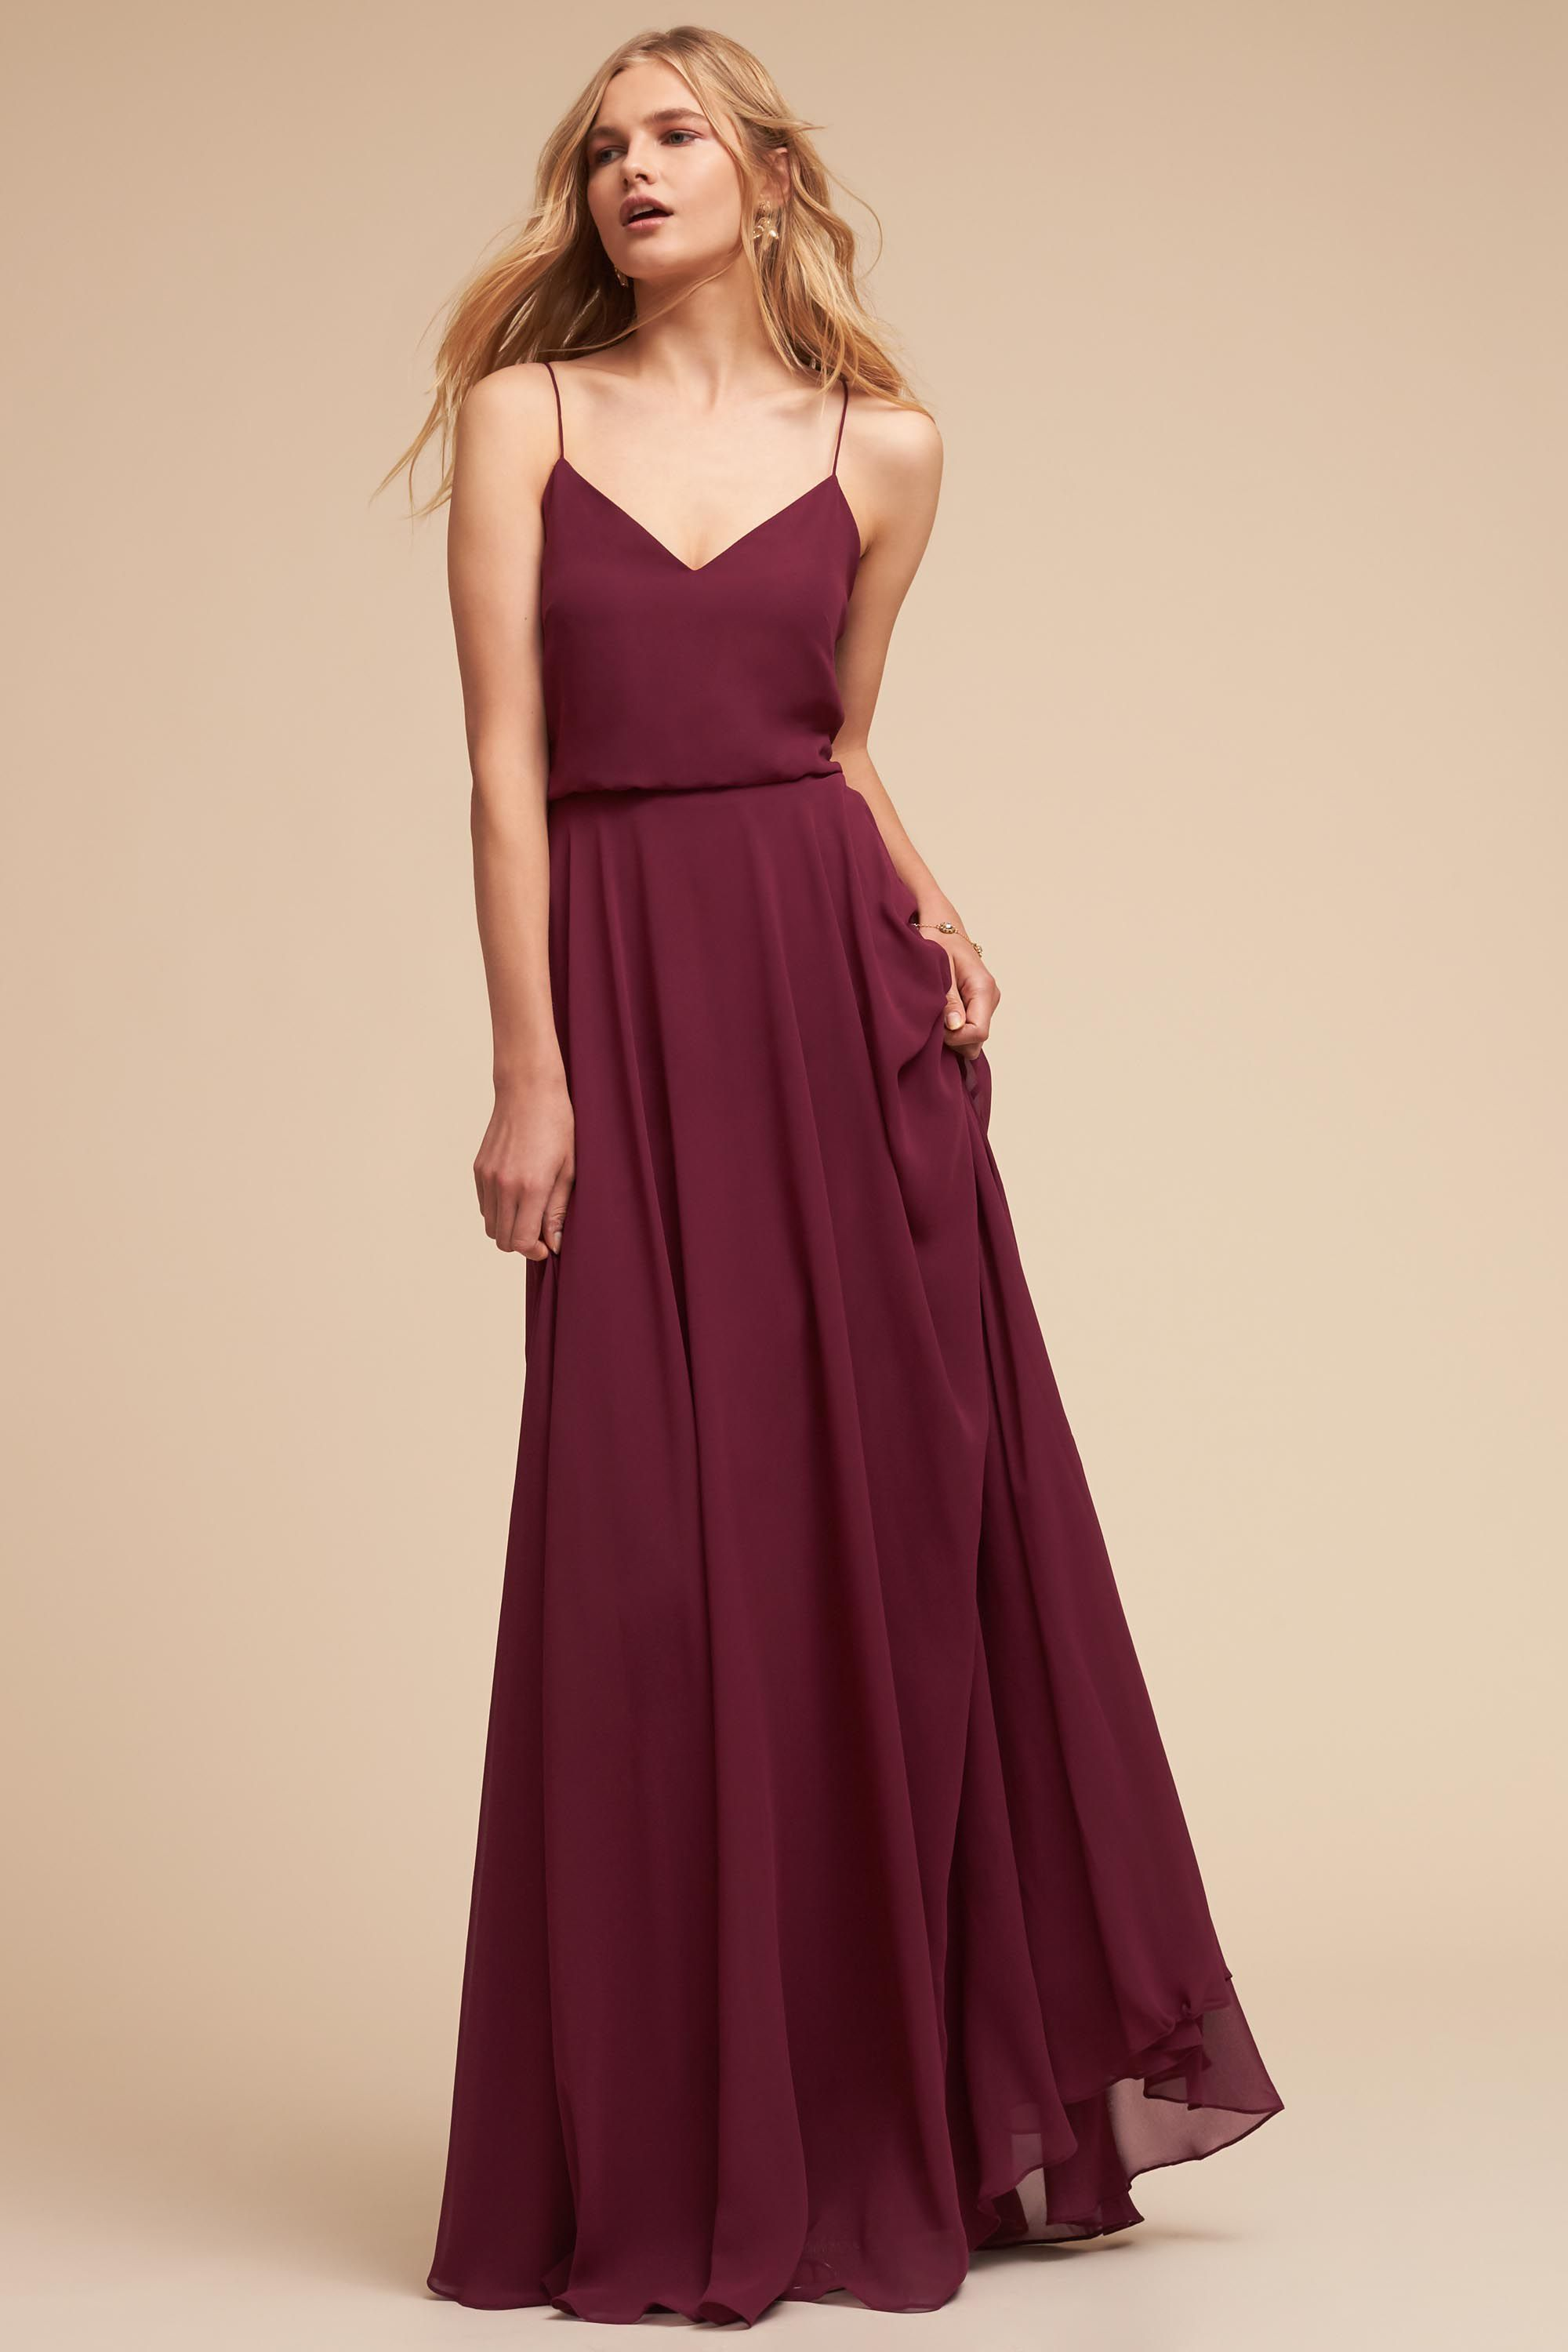 73f62cf5601 Inesse Dress from  BHLDN